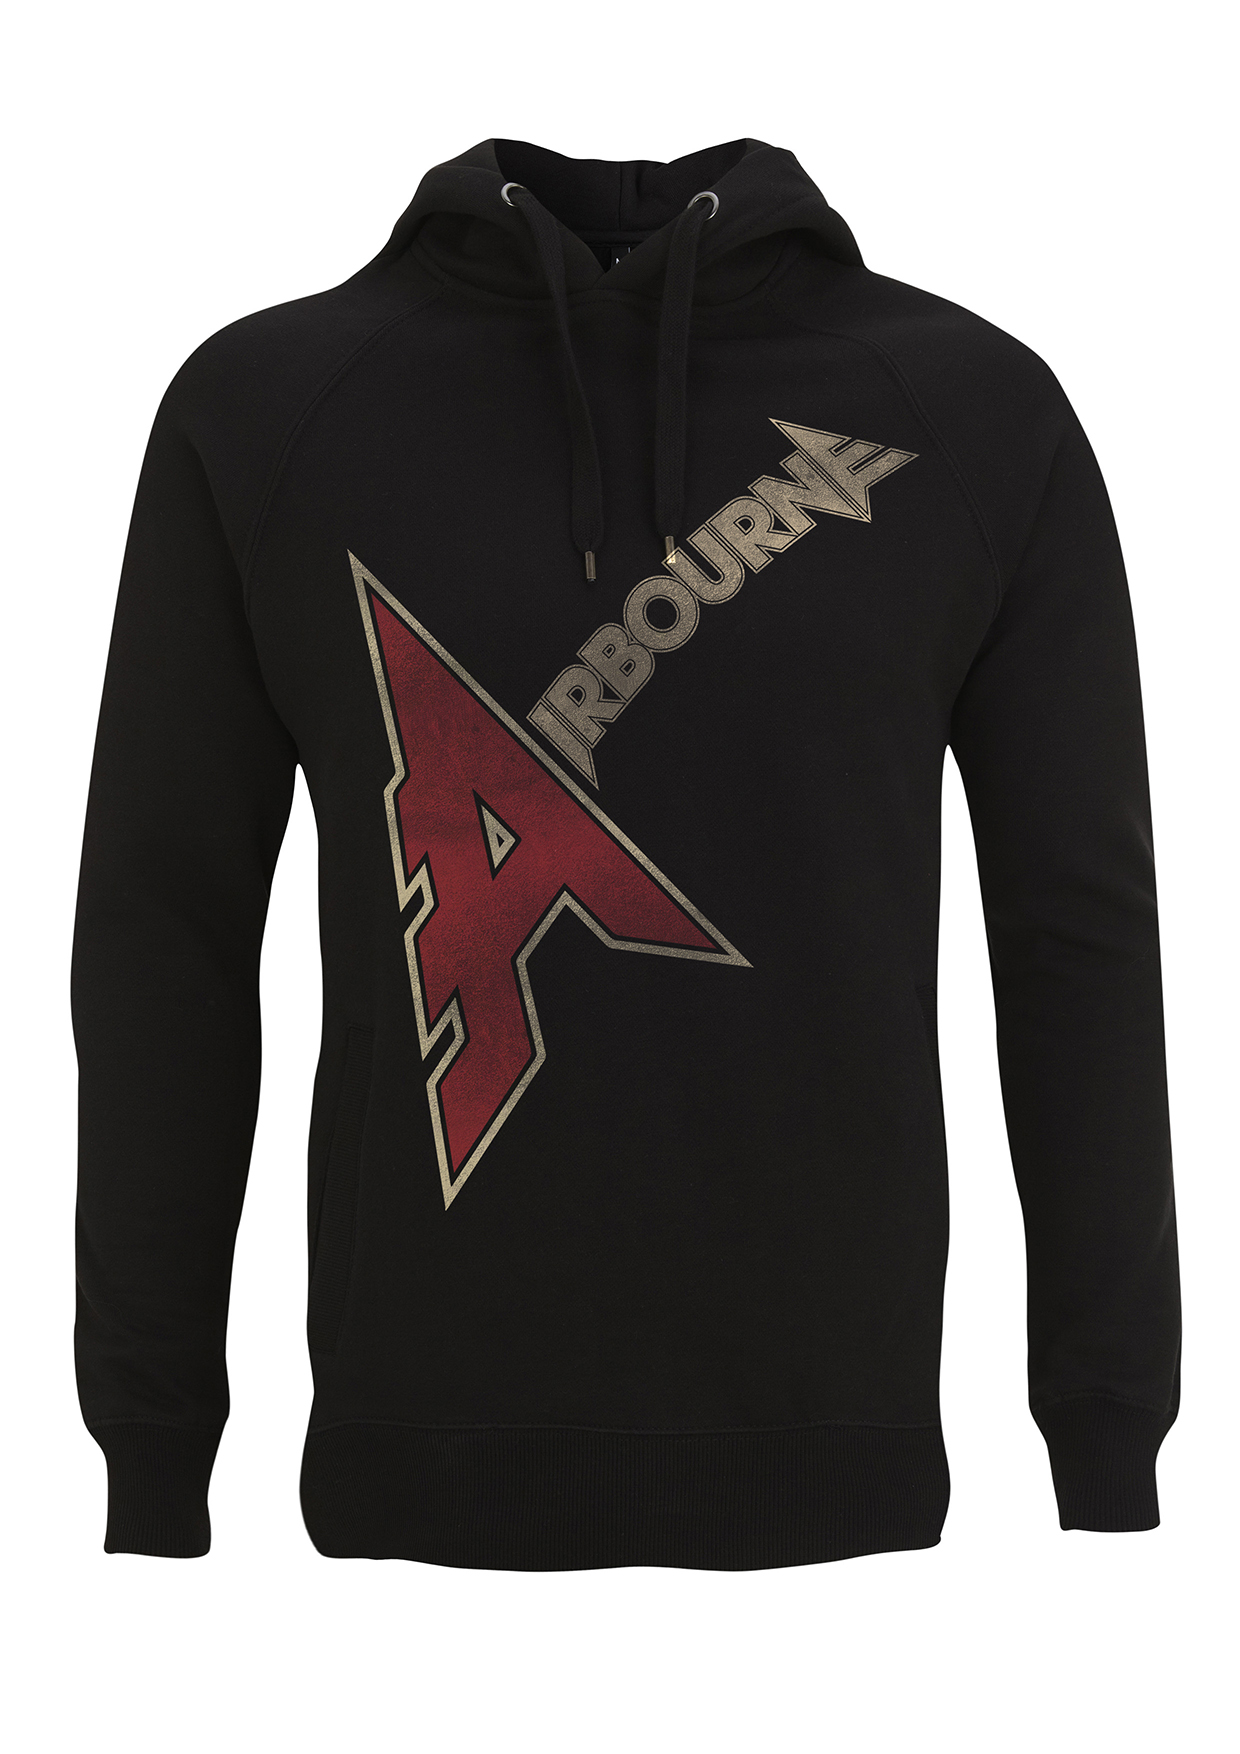 Airbourne - A Logo – Hooded Top - Airbourne